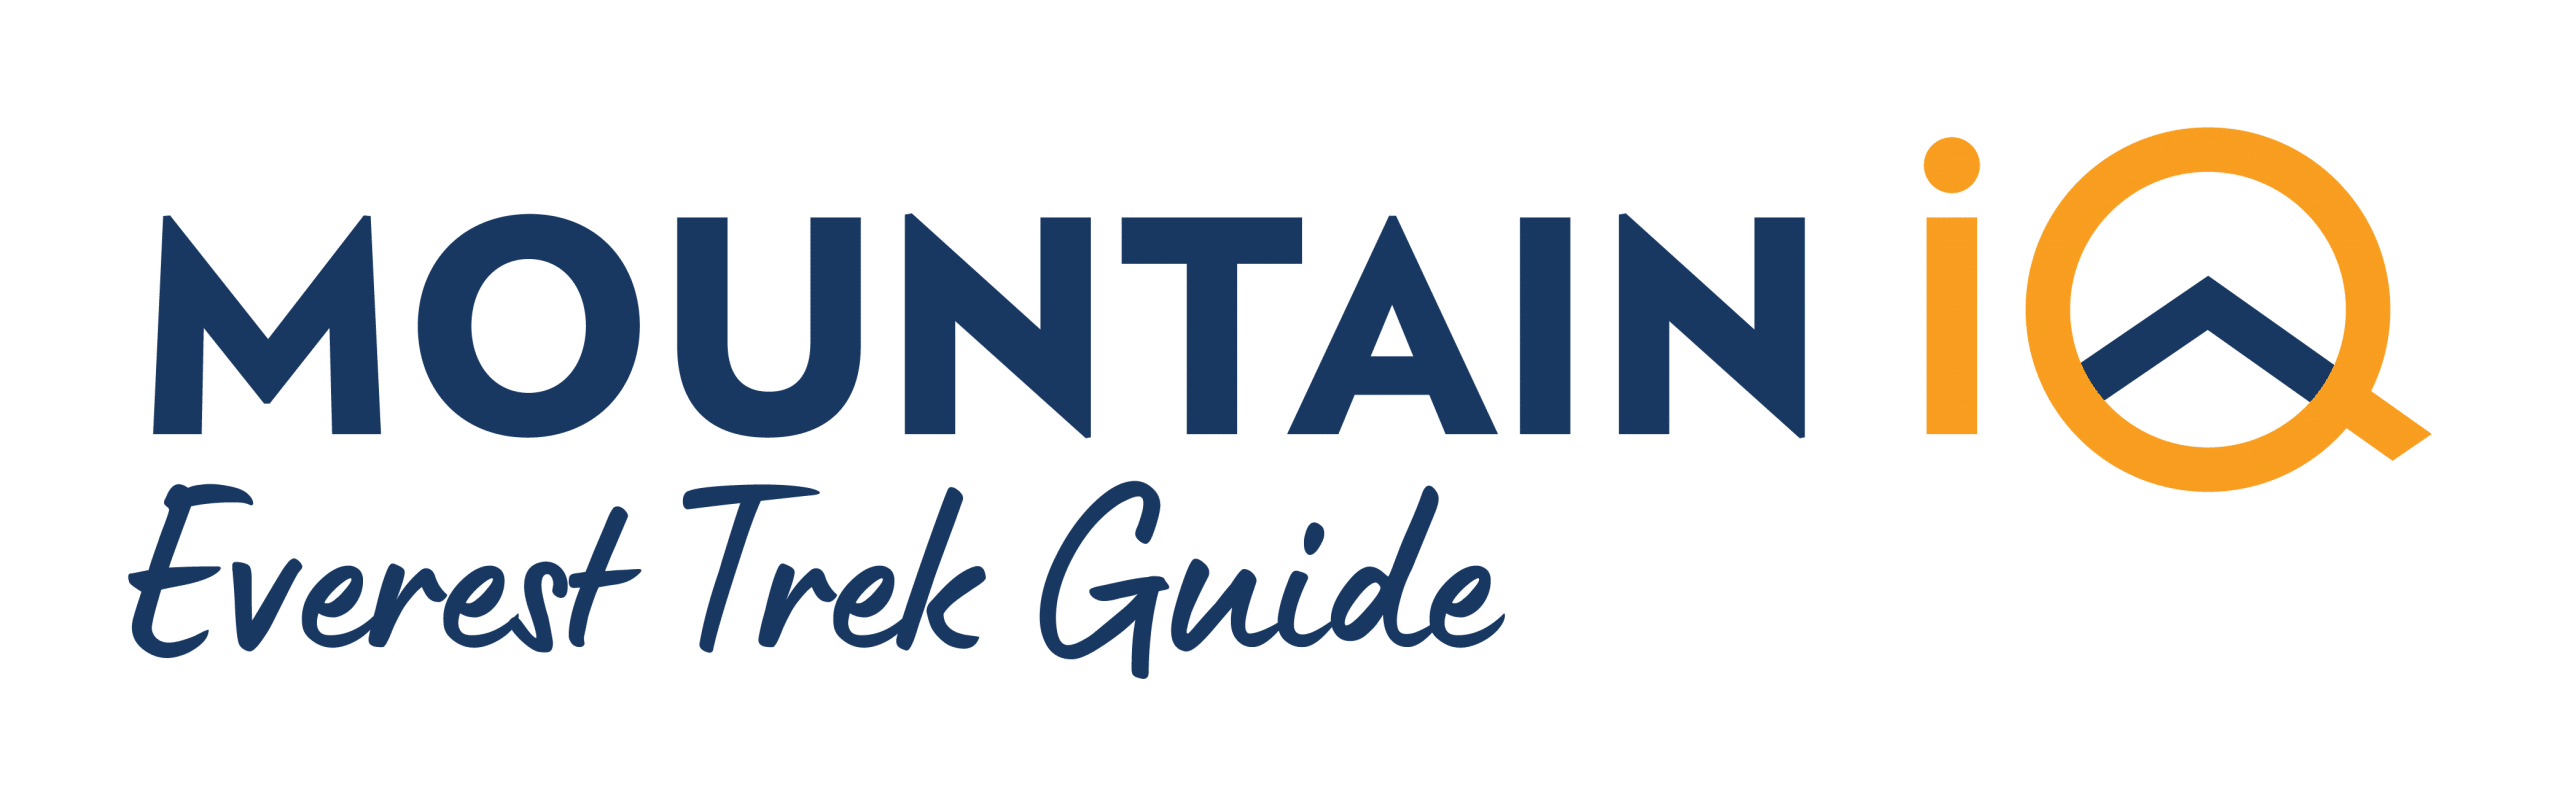 ebc trek guide mountain iq logo